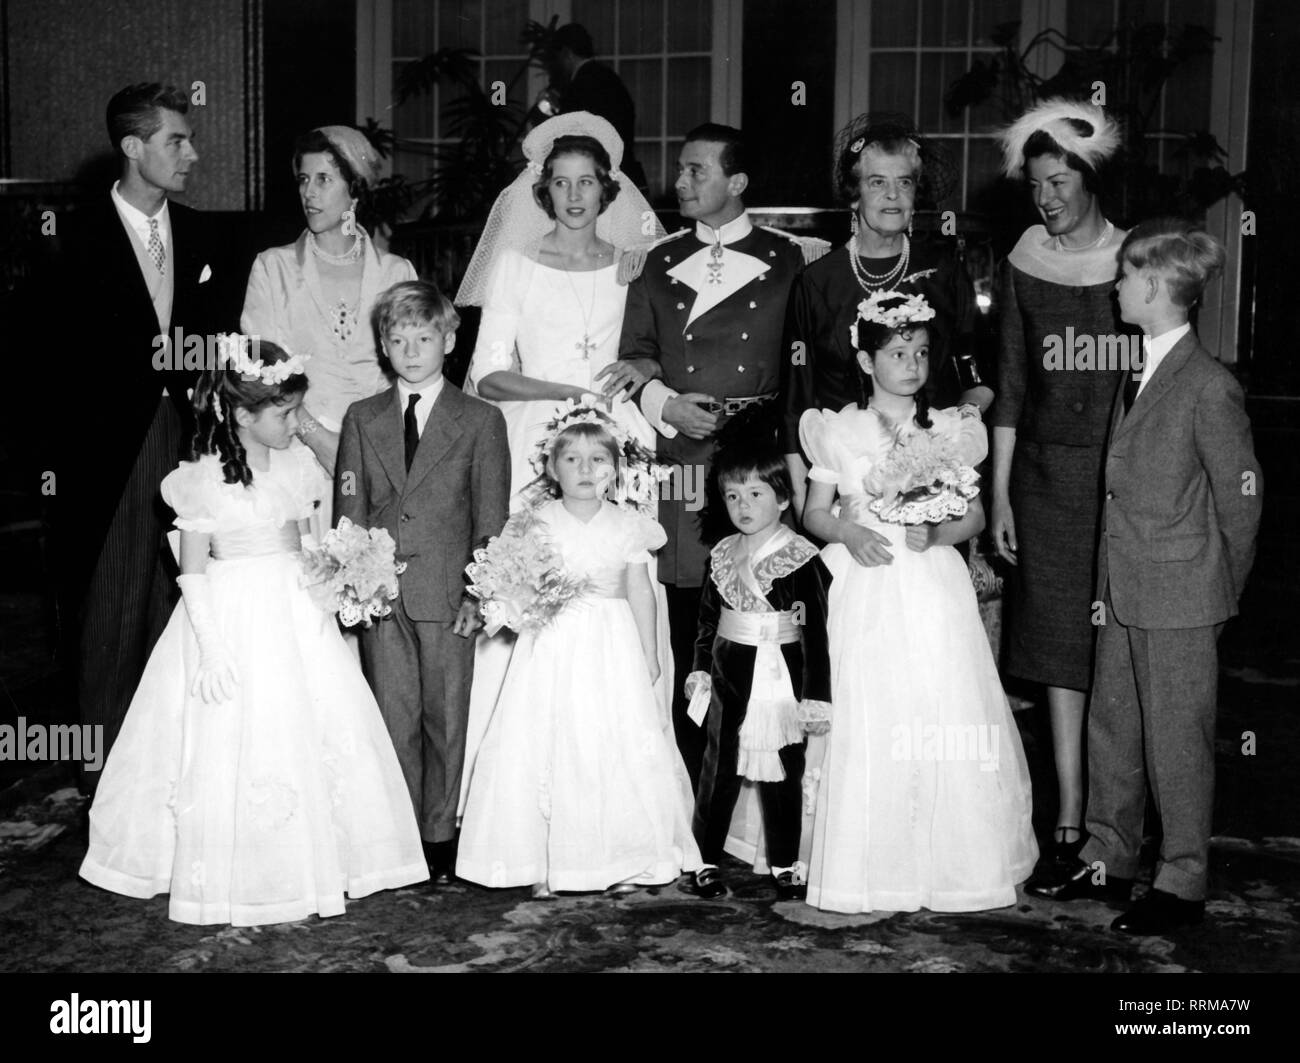 Windisch-Graetz, Friedrich prince of, 7.7.1917 - 29.5.2002, German aristocrat, wedding with princess Dorothea of Hesse, after the ecclesiastical marriage in the hotel Vier Jahreszeiten, Munich, 1.4.1959, group picture, Additional-Rights-Clearance-Info-Not-Available - Stock Image